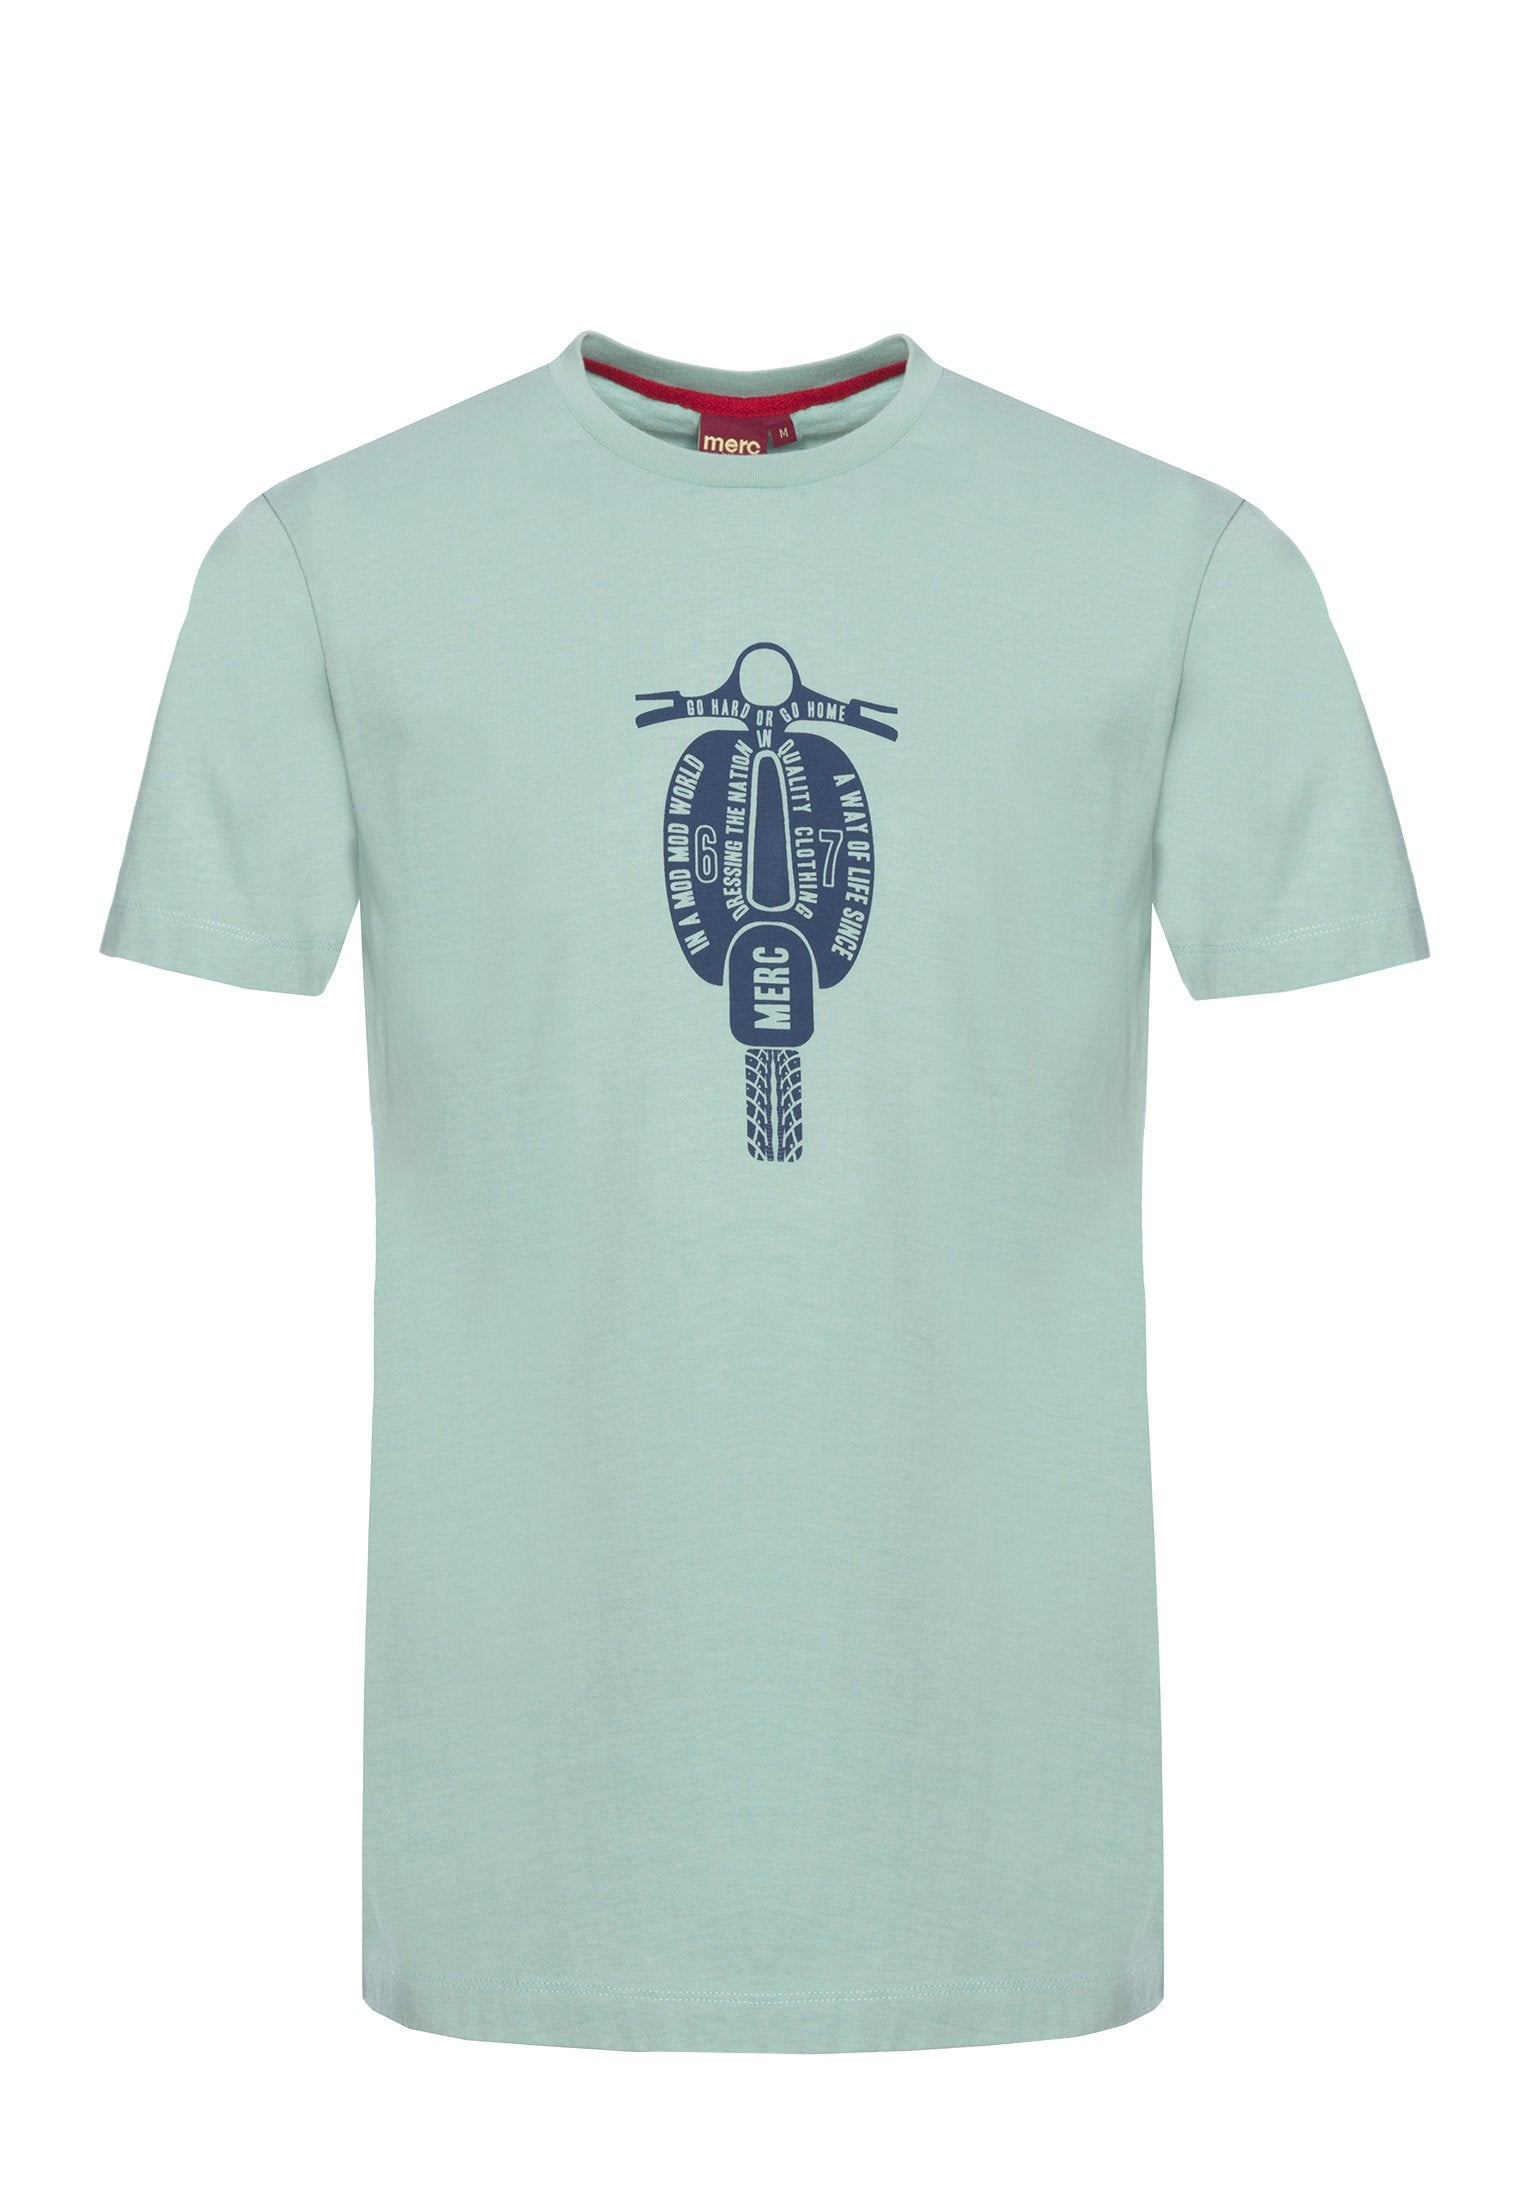 Cullum Scooter Print T-Shirt - Merc London